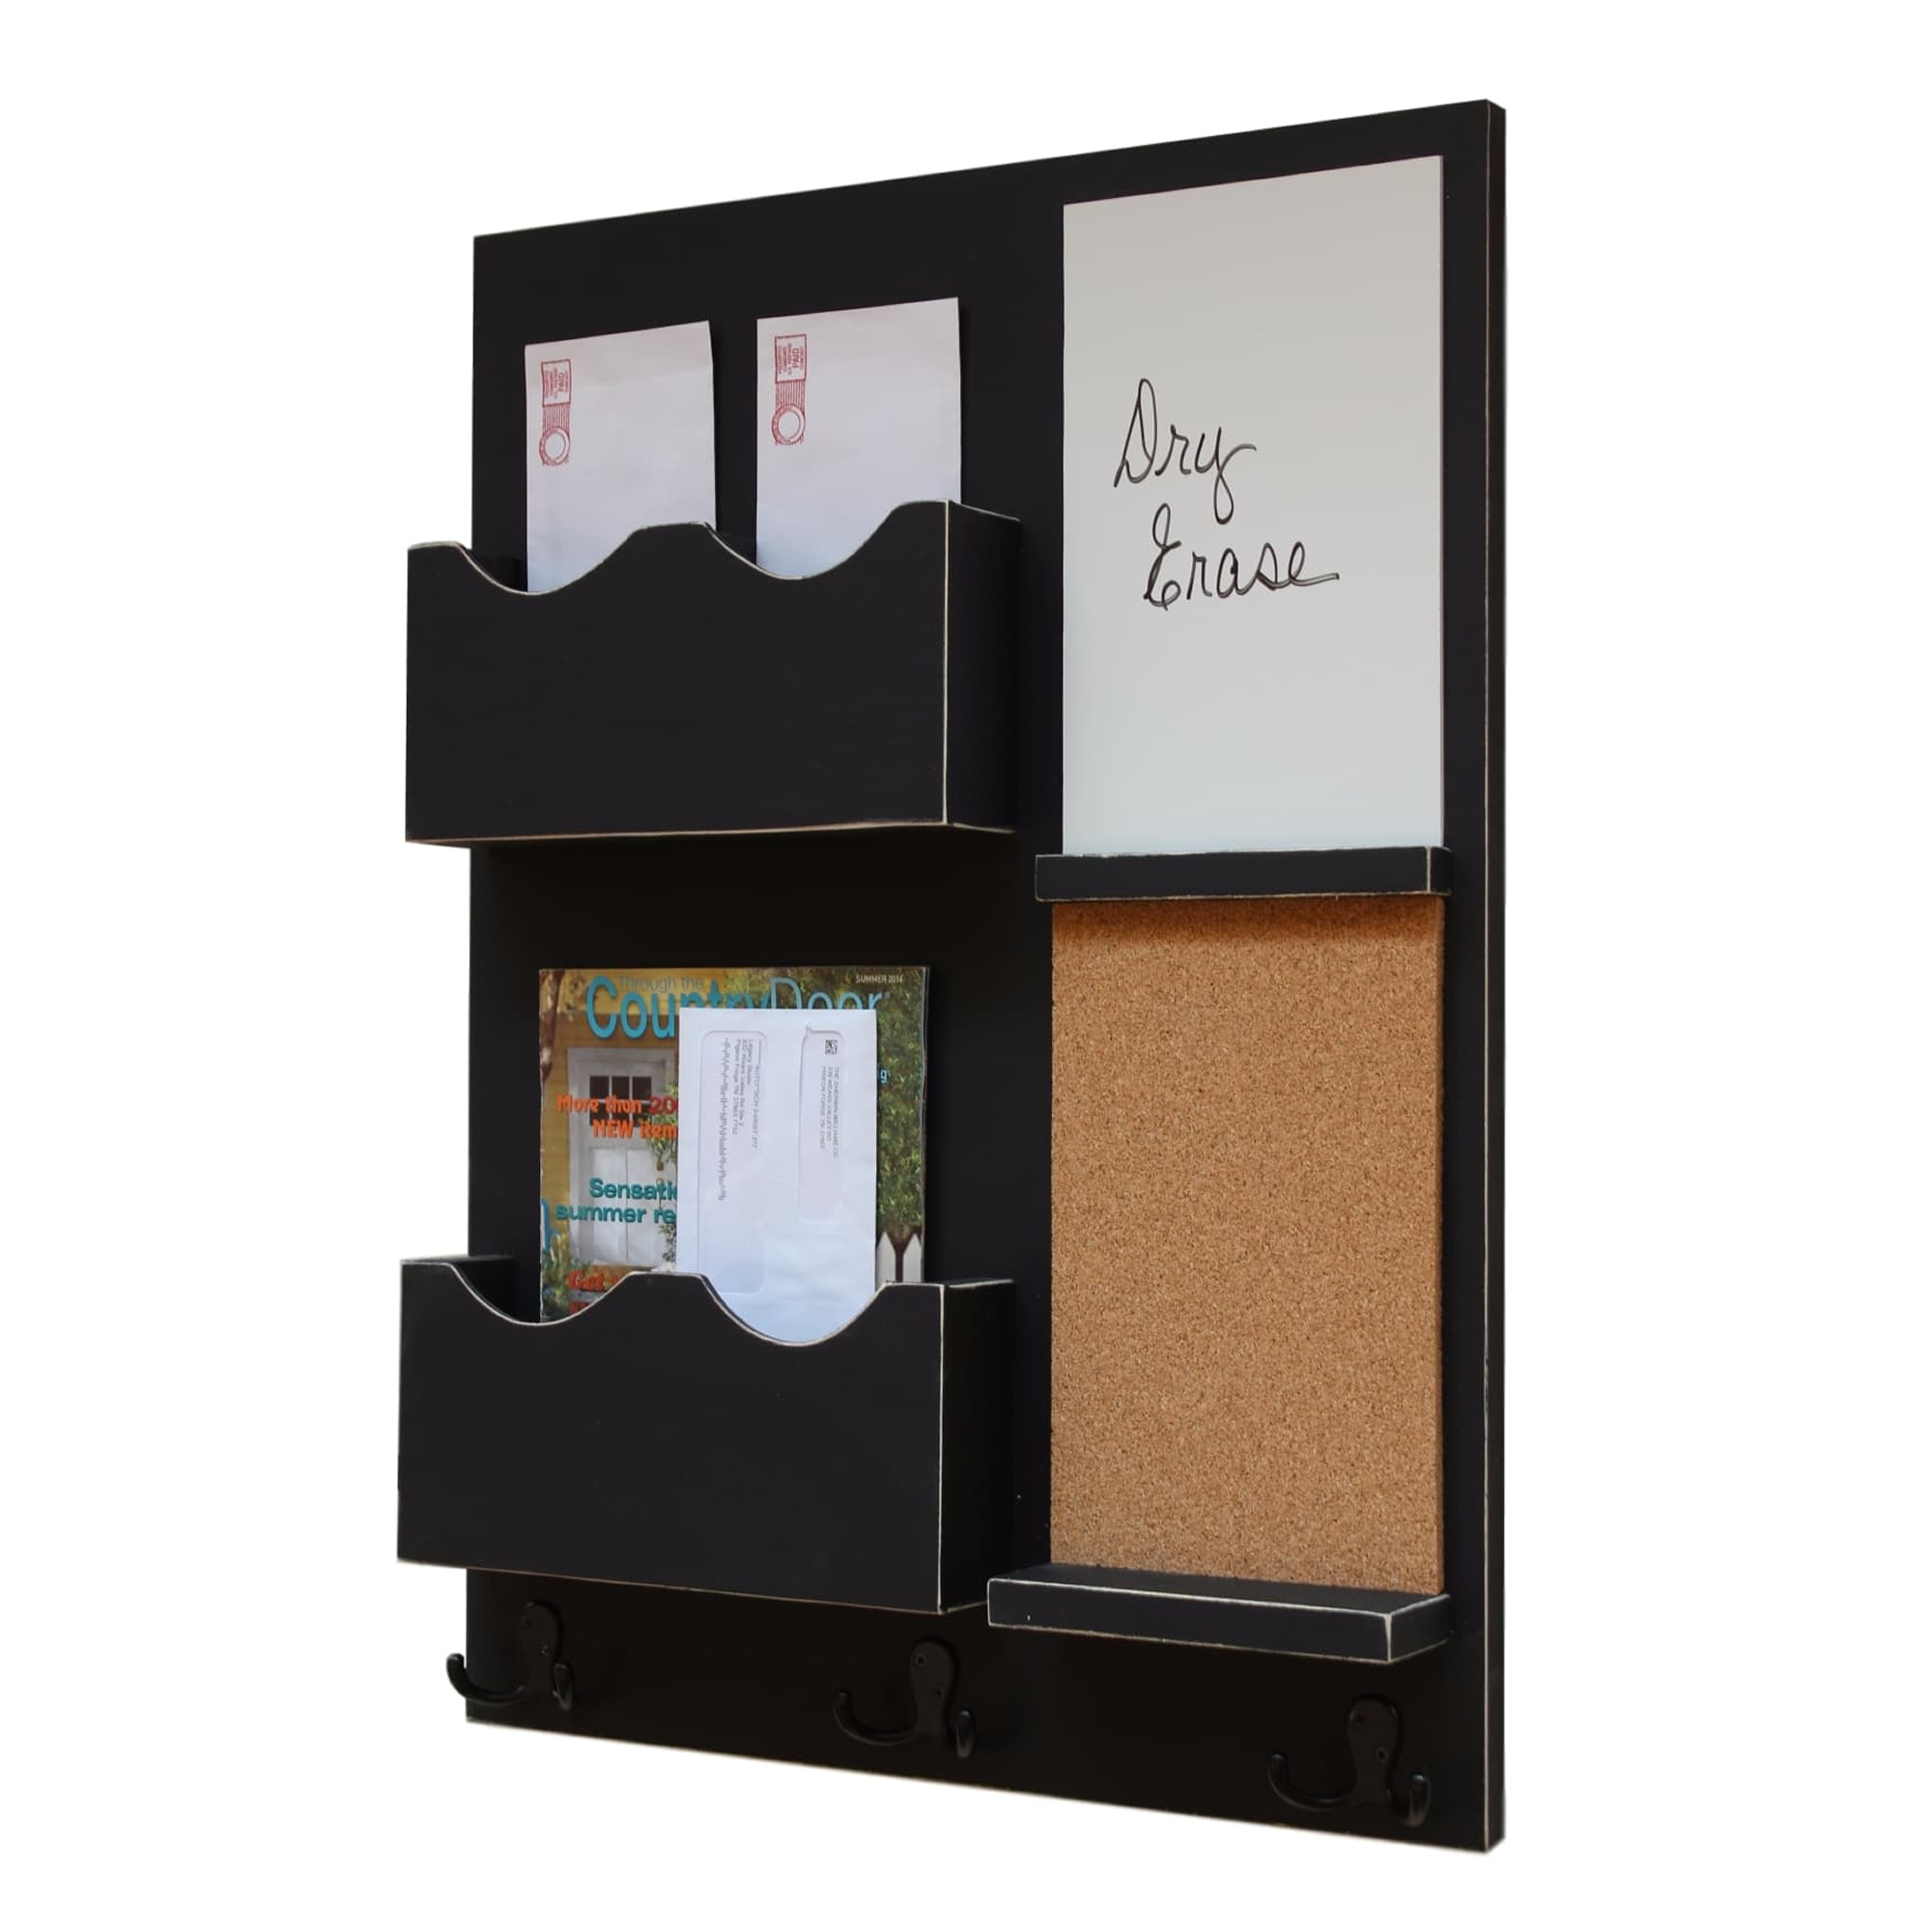 Mail Organizer With Cork Board, Whiteboard, Coat Hooks U0026 Double Mail Slots